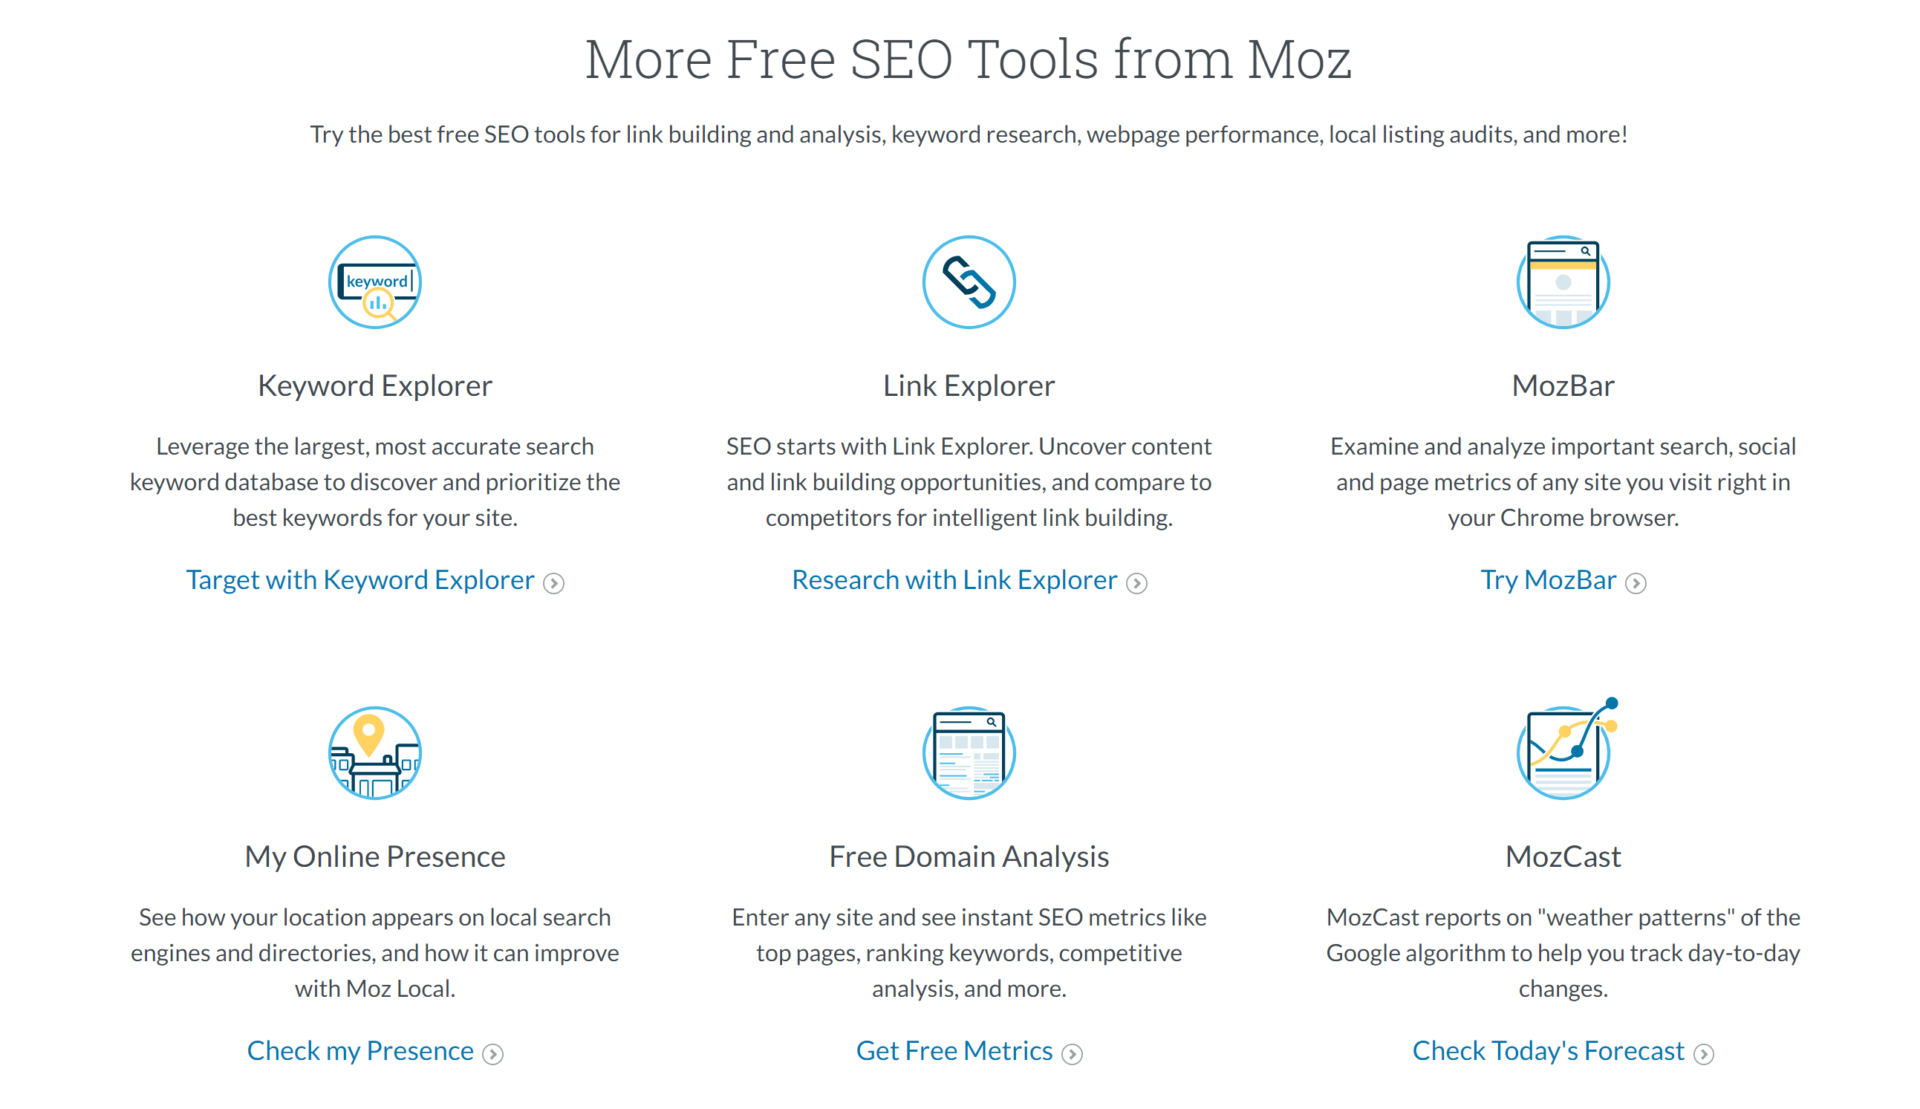 9 free marketing resources that are actually useful